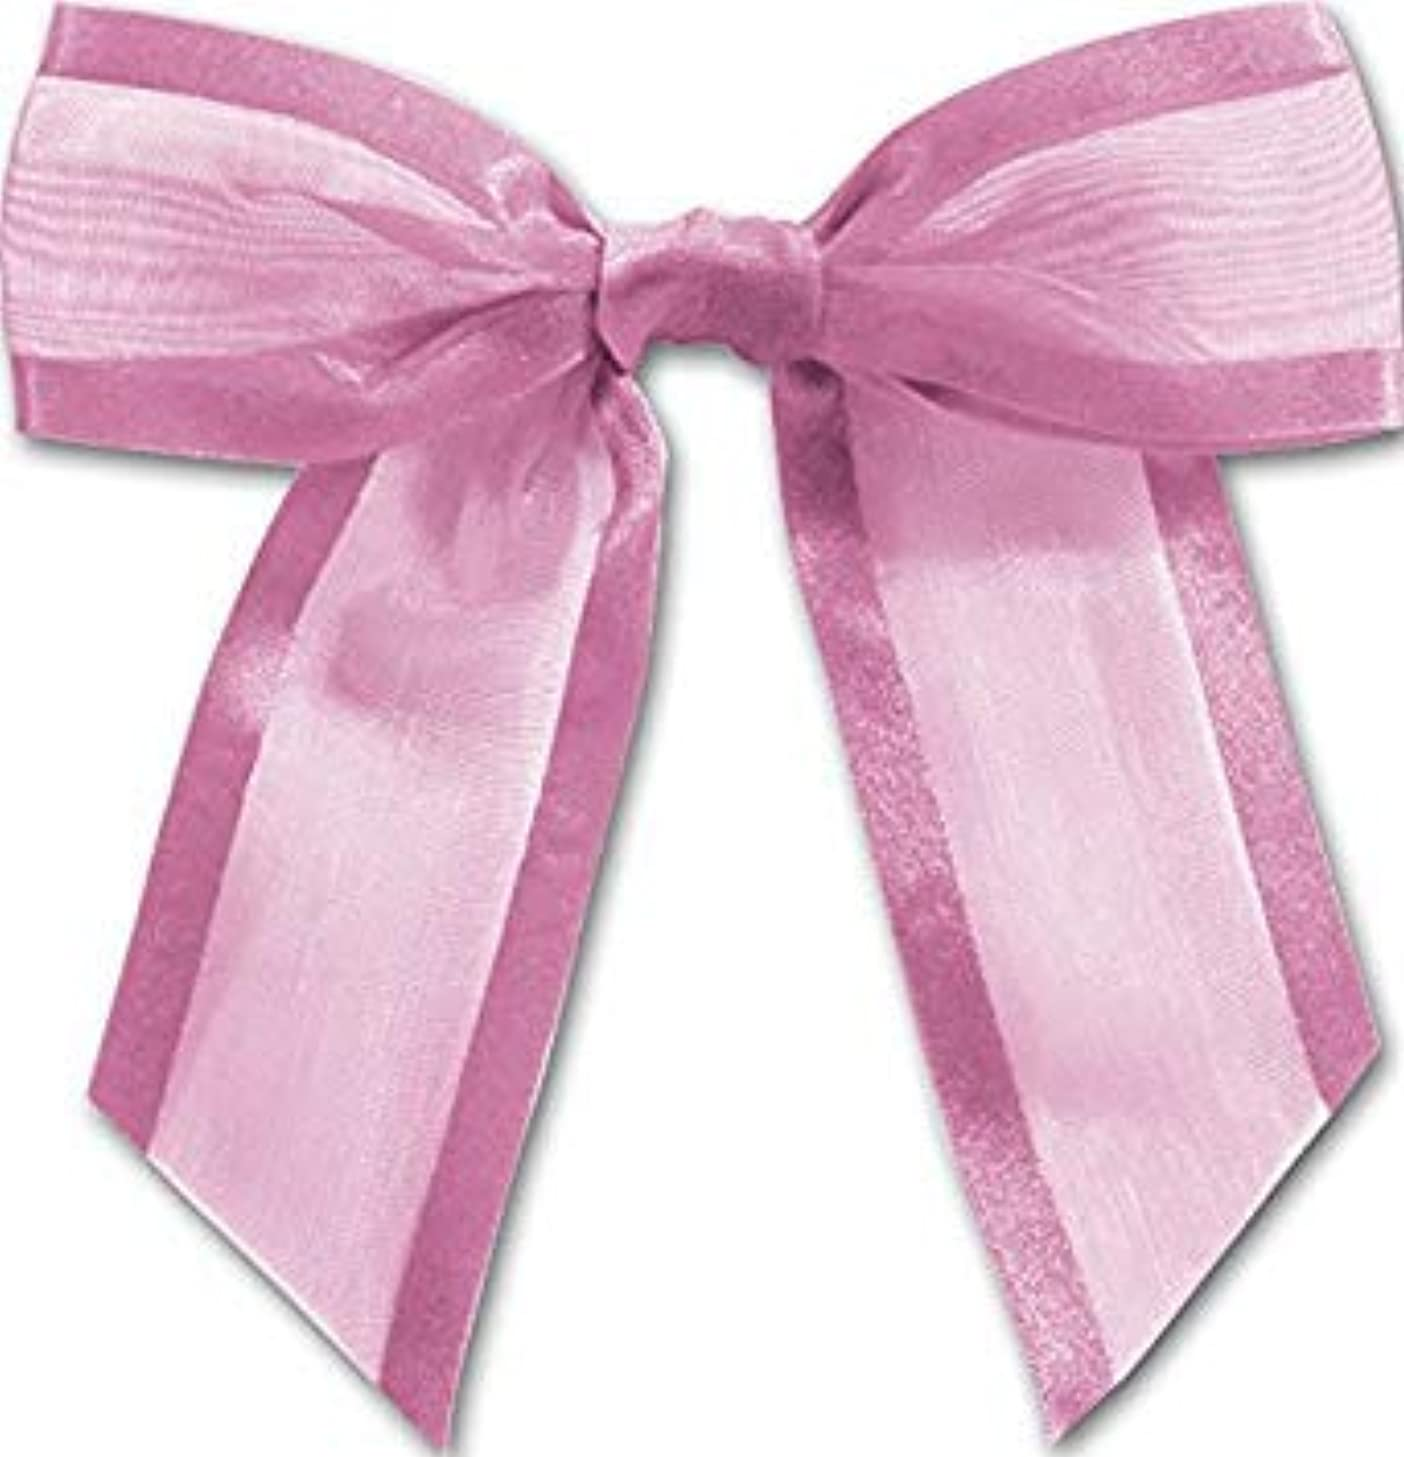 Lavender Pre-Tied Organza Bows with Twist Ties. Pack of 12 Satin-Edged Fabric Bows Made of 1-1/2